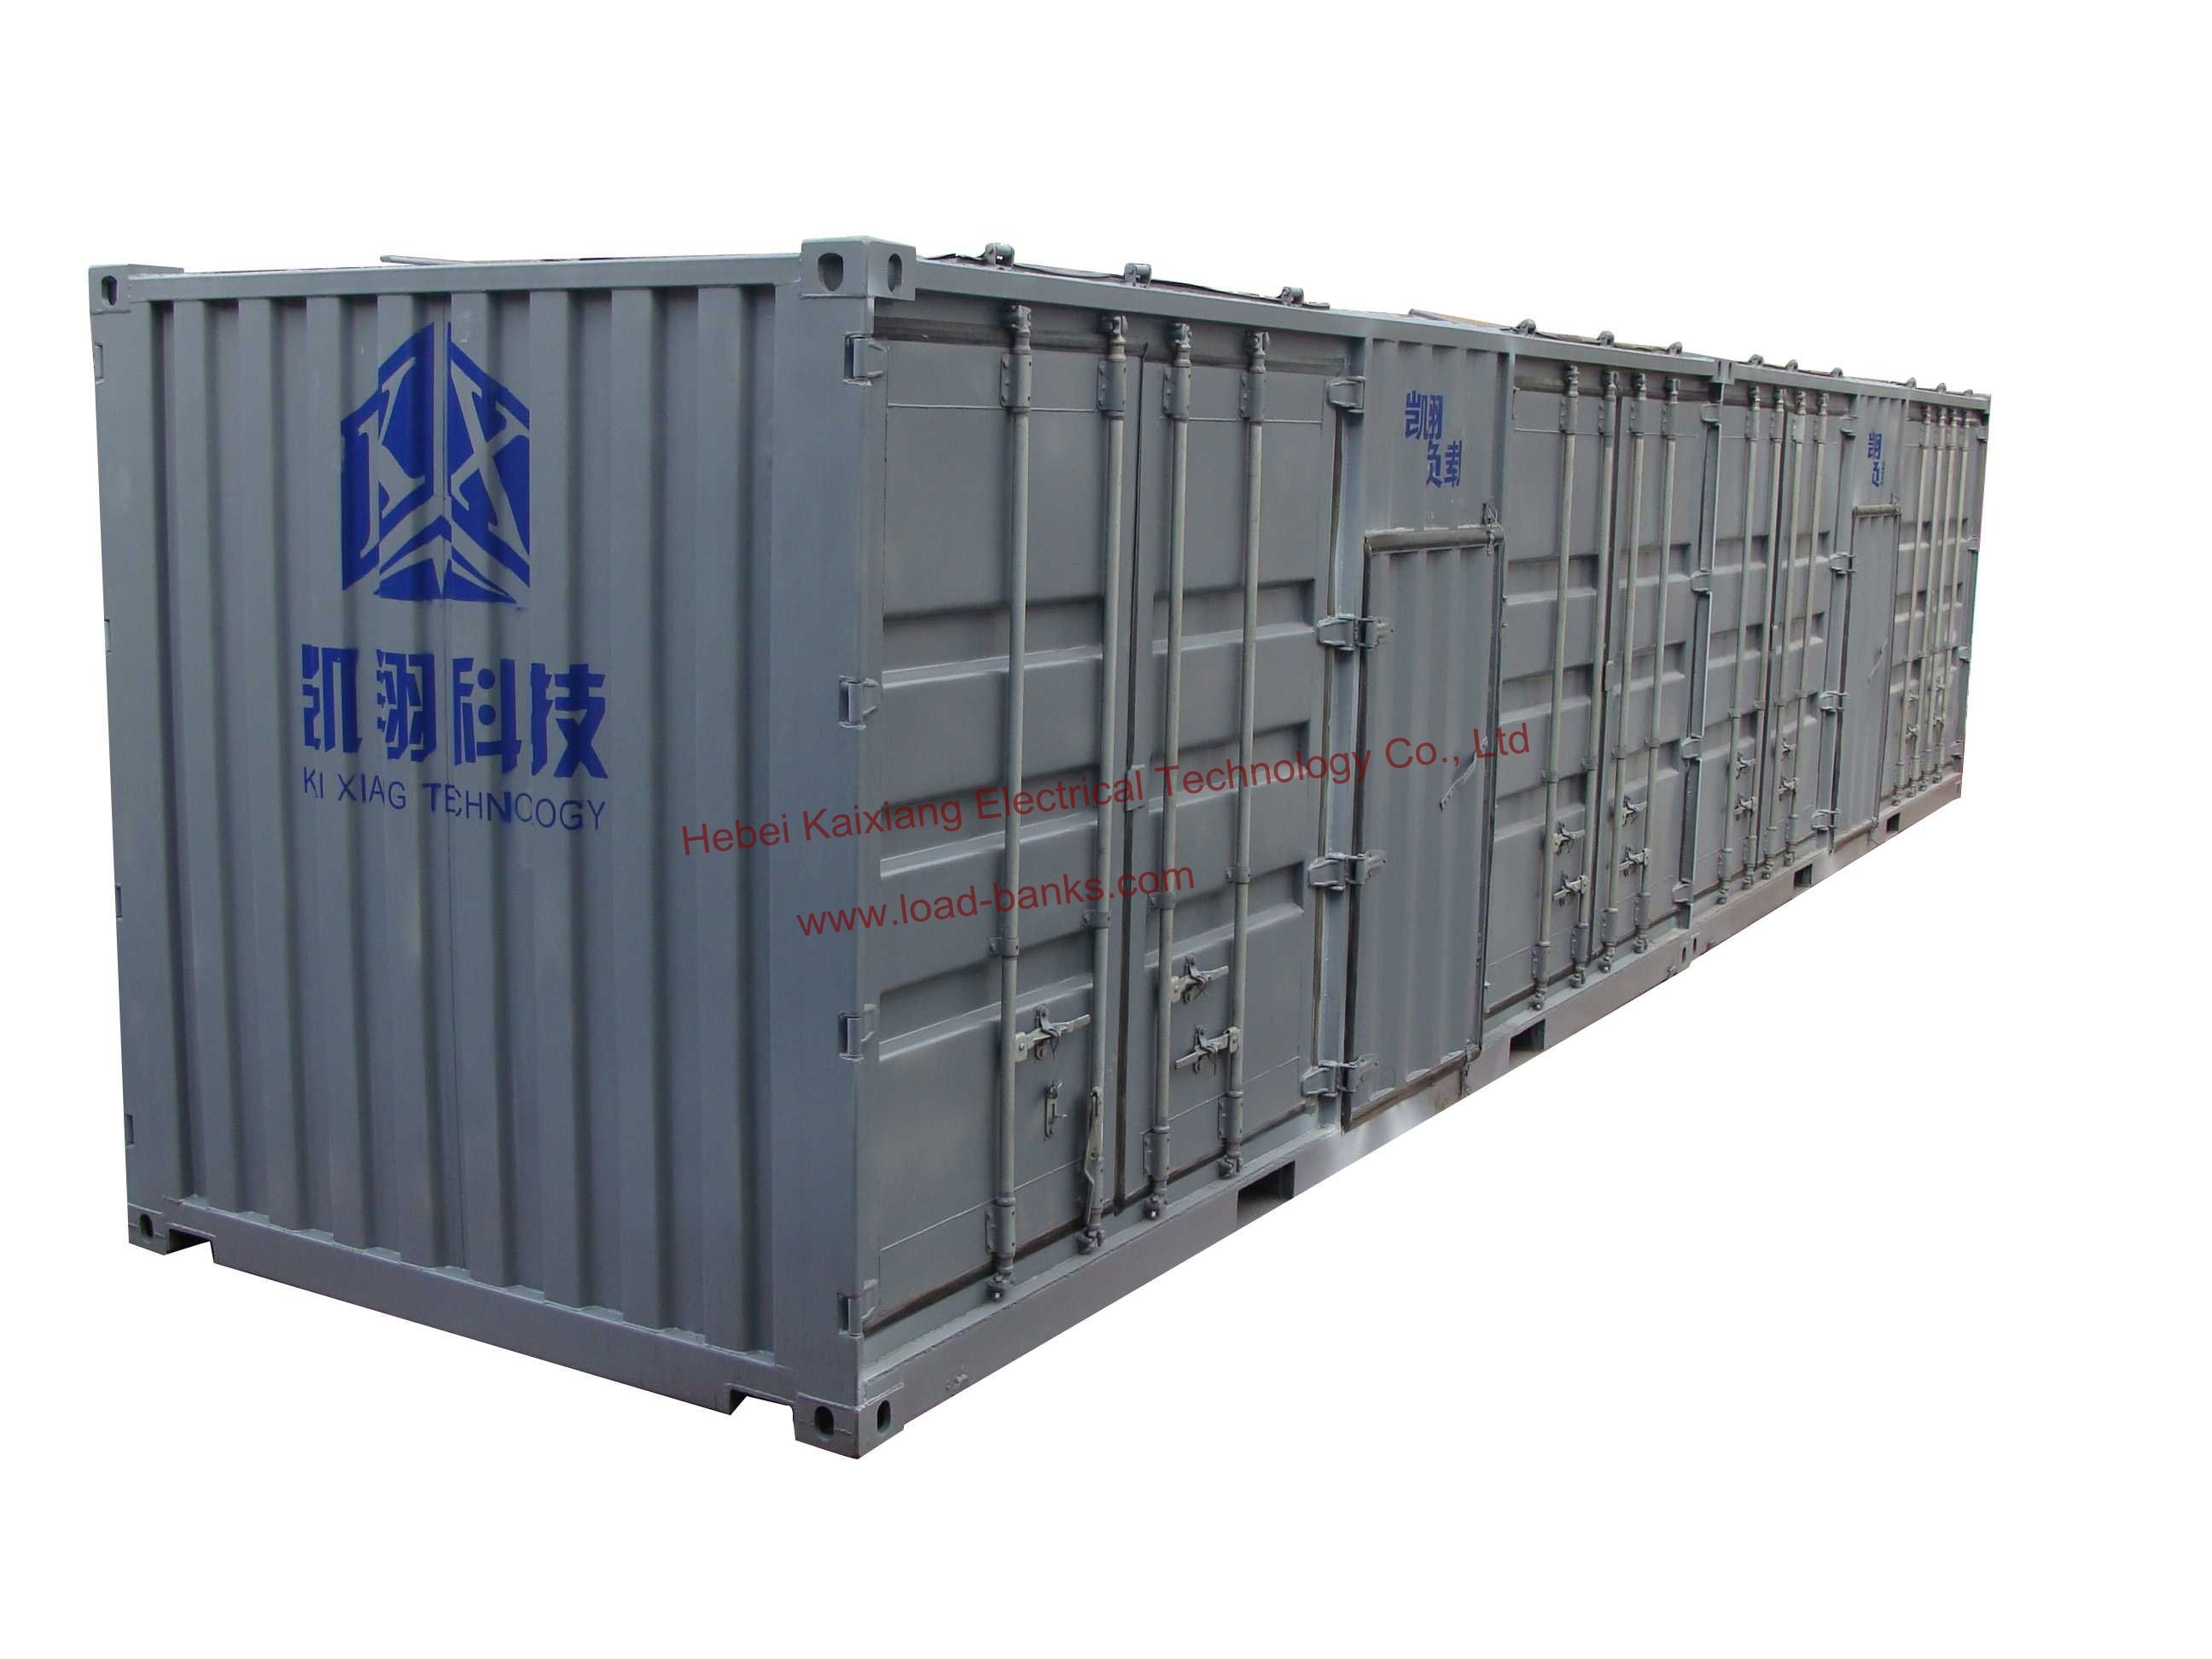 AC400-6000kw Load Bank (container type)